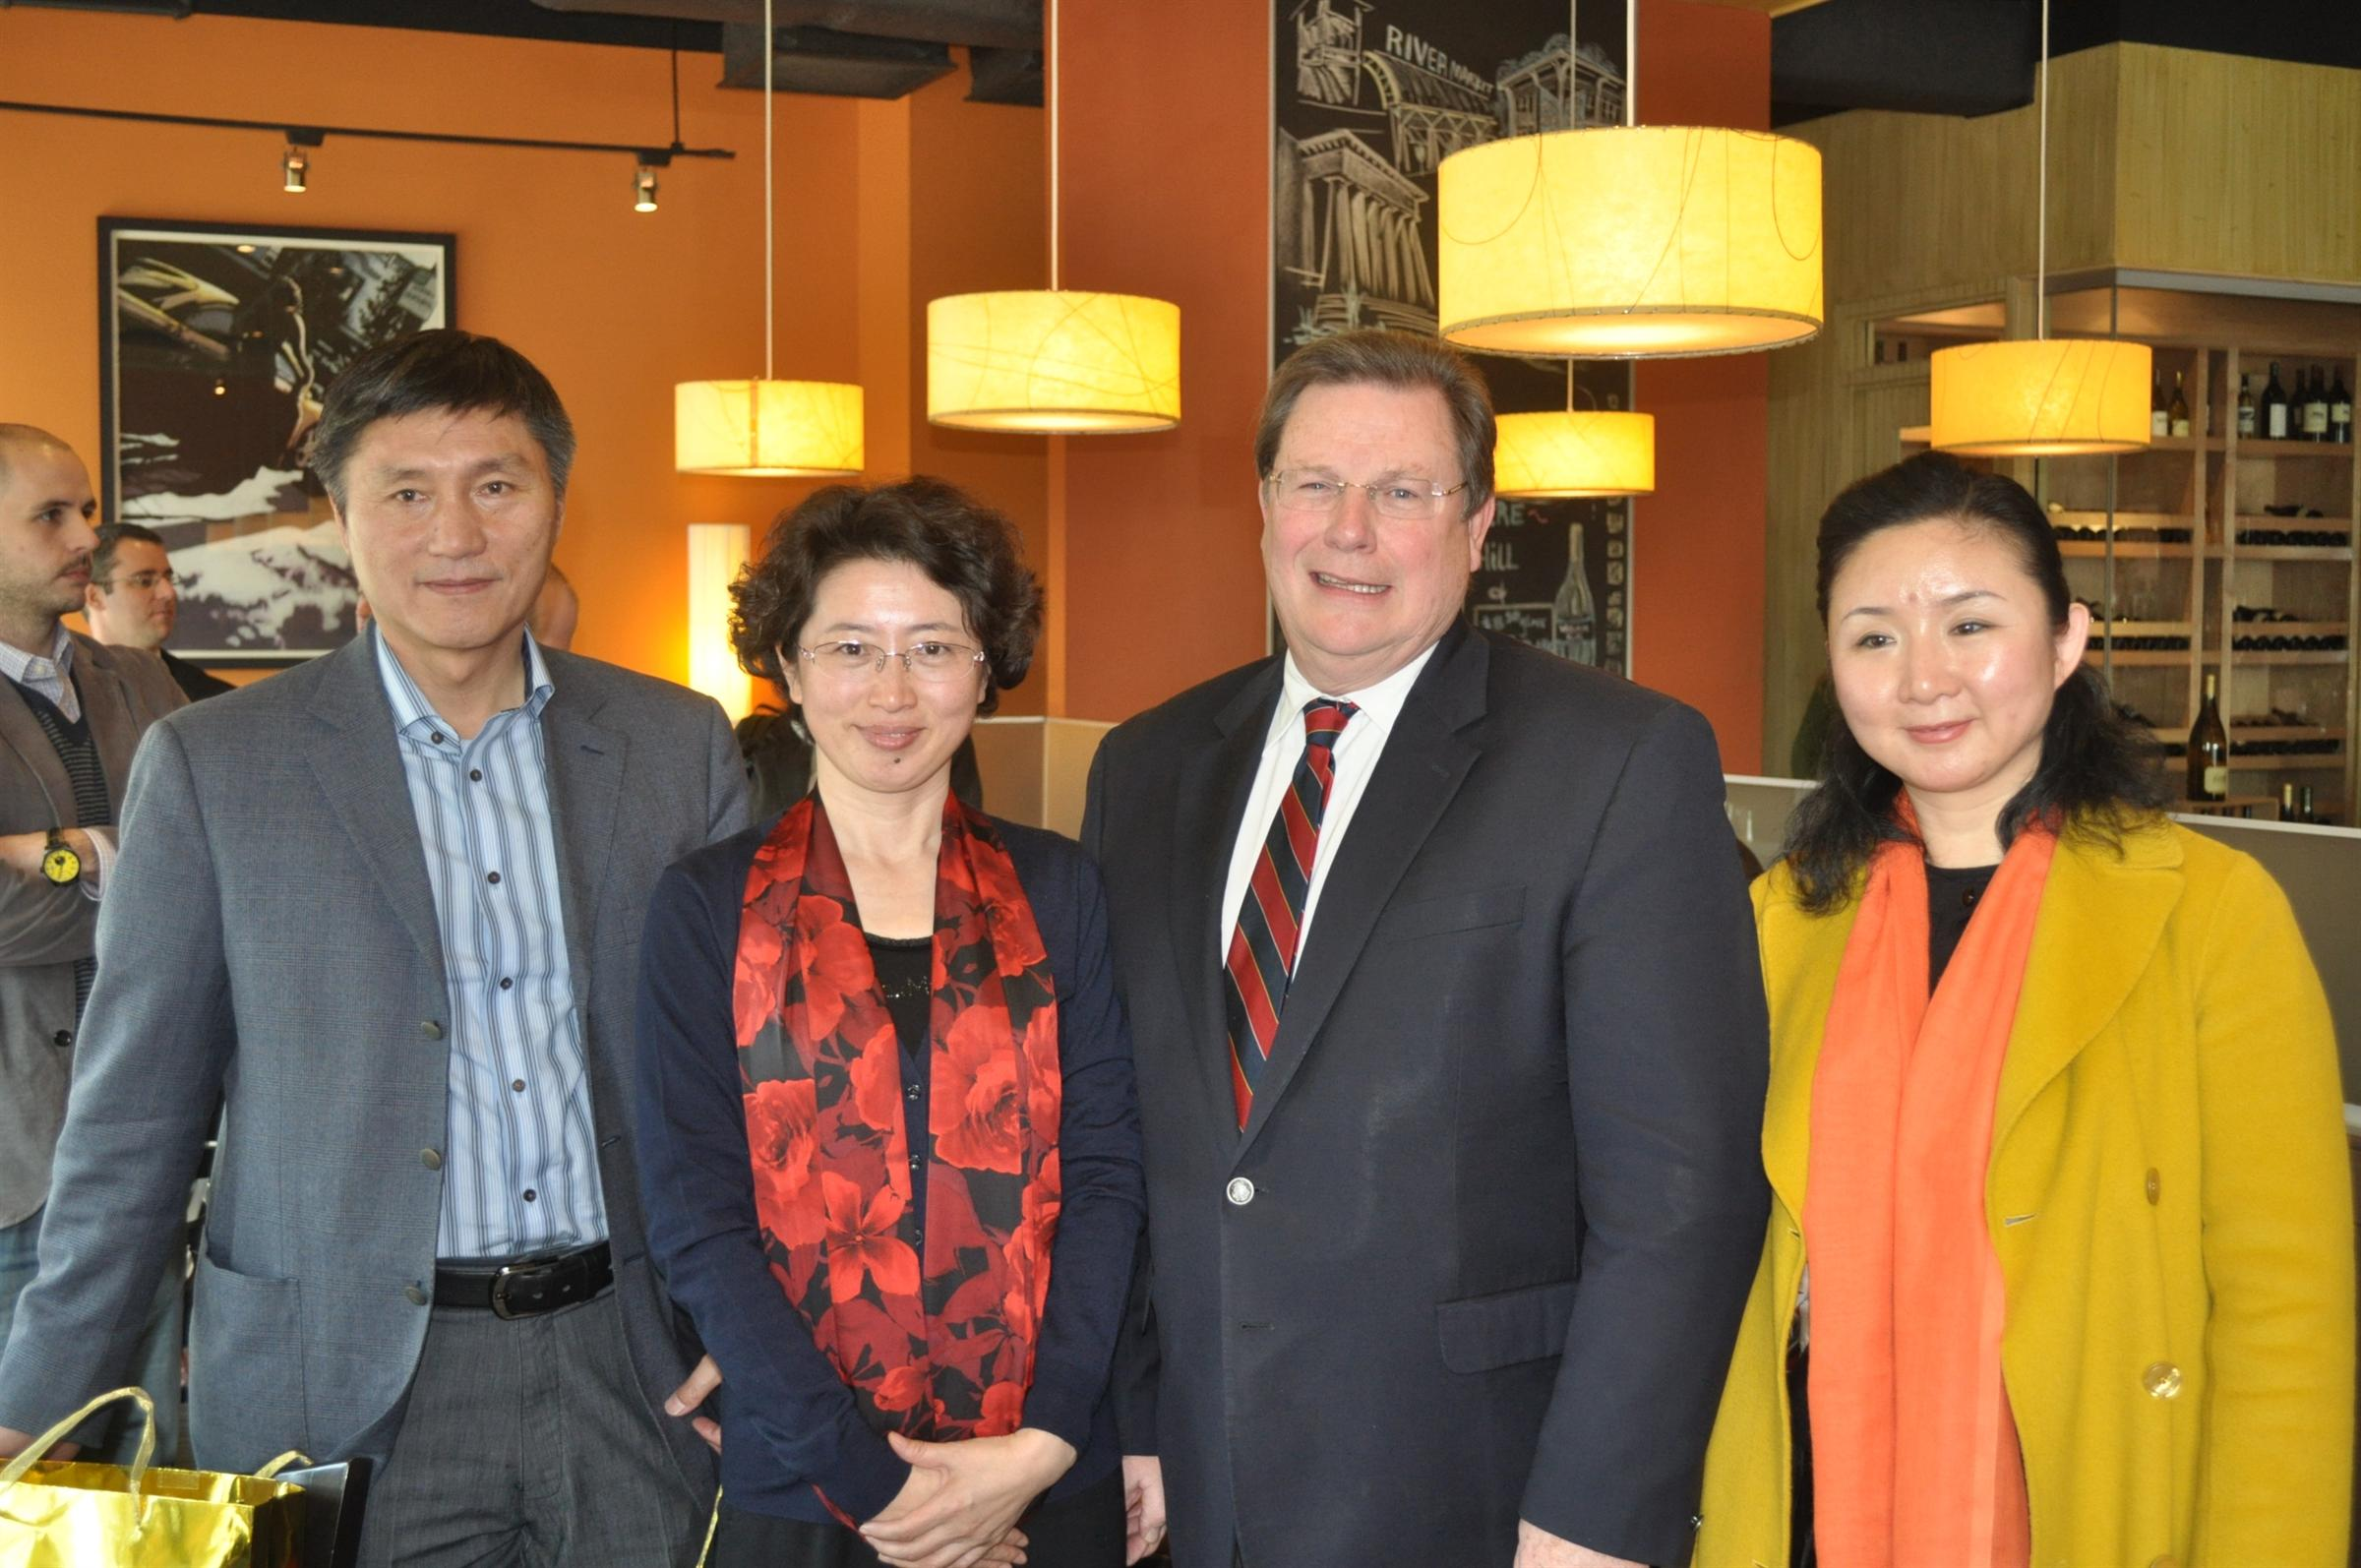 Changchun Delegation